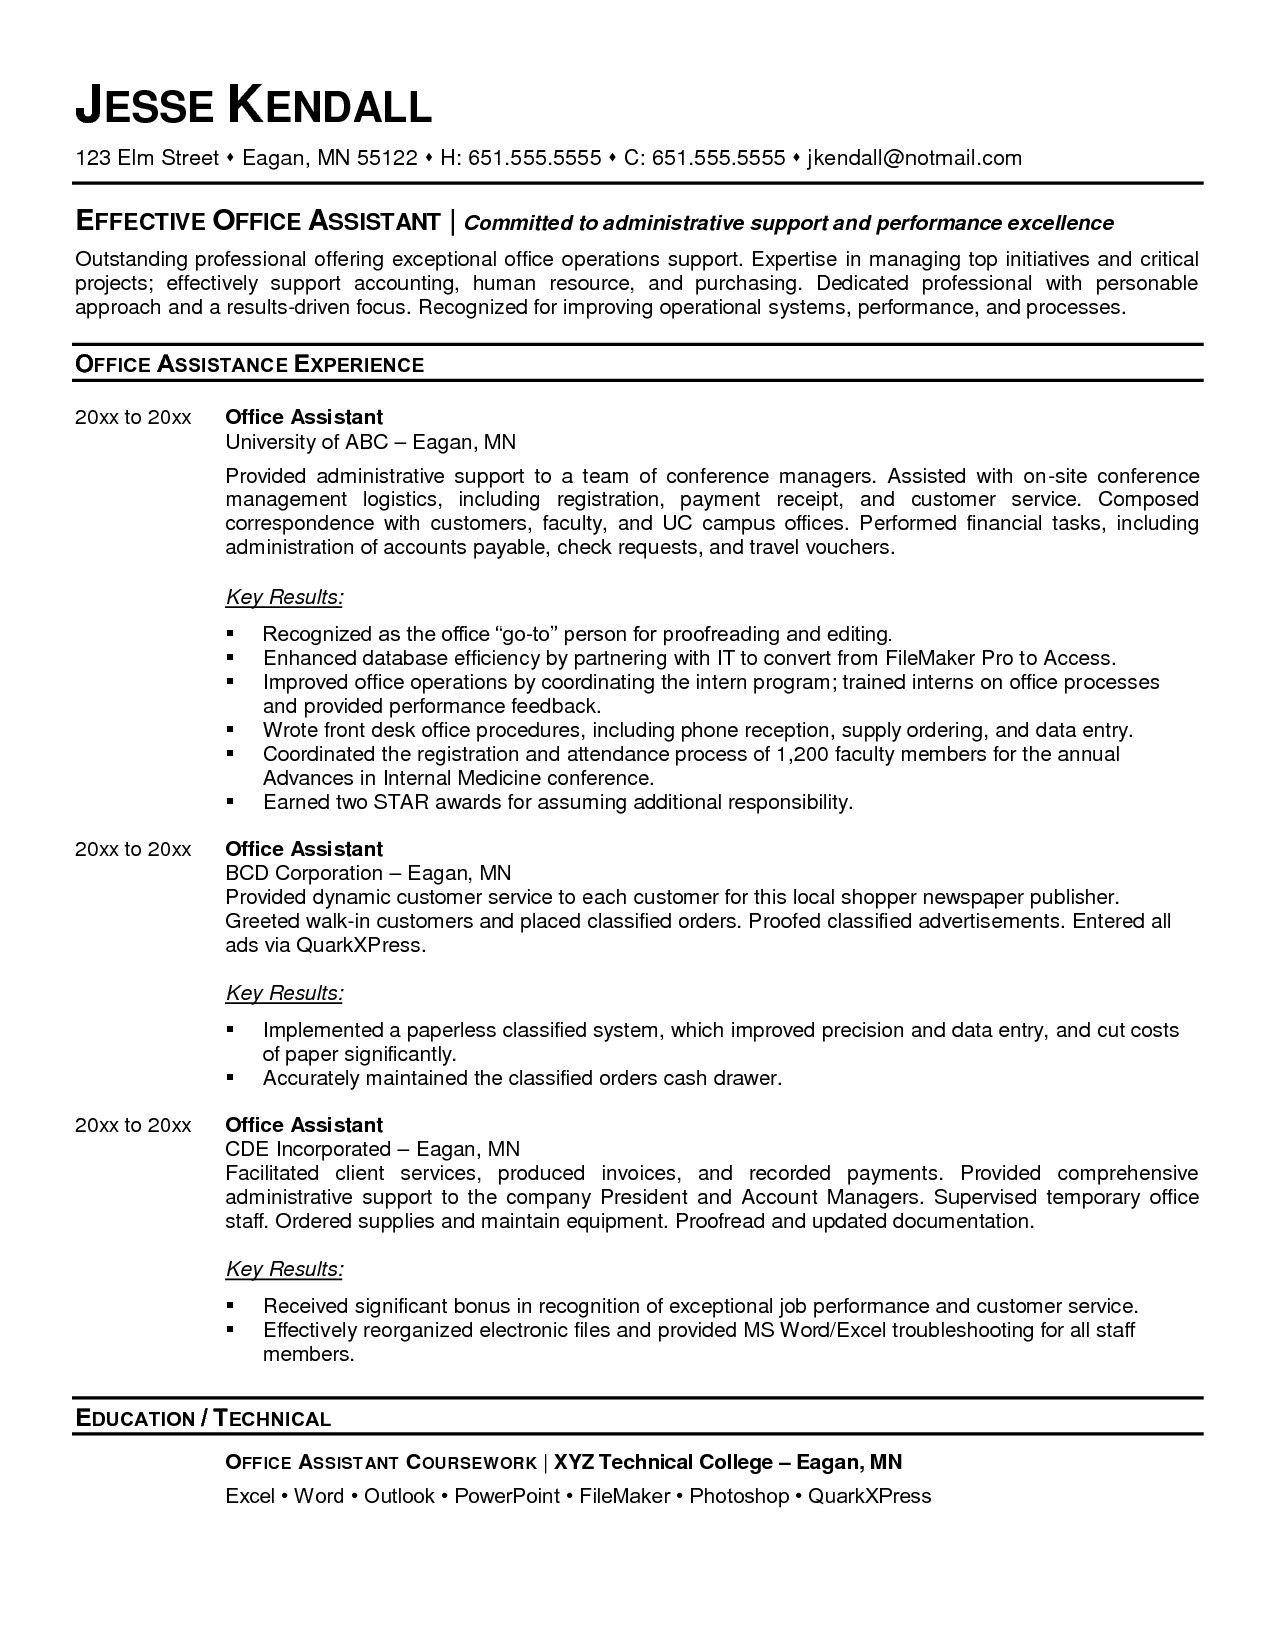 medical office manager resume example example-Medical fice Manager Resume Examples New Medical Fice Assistant Resume Sample Beautiful 10 Sample Resume 18-j